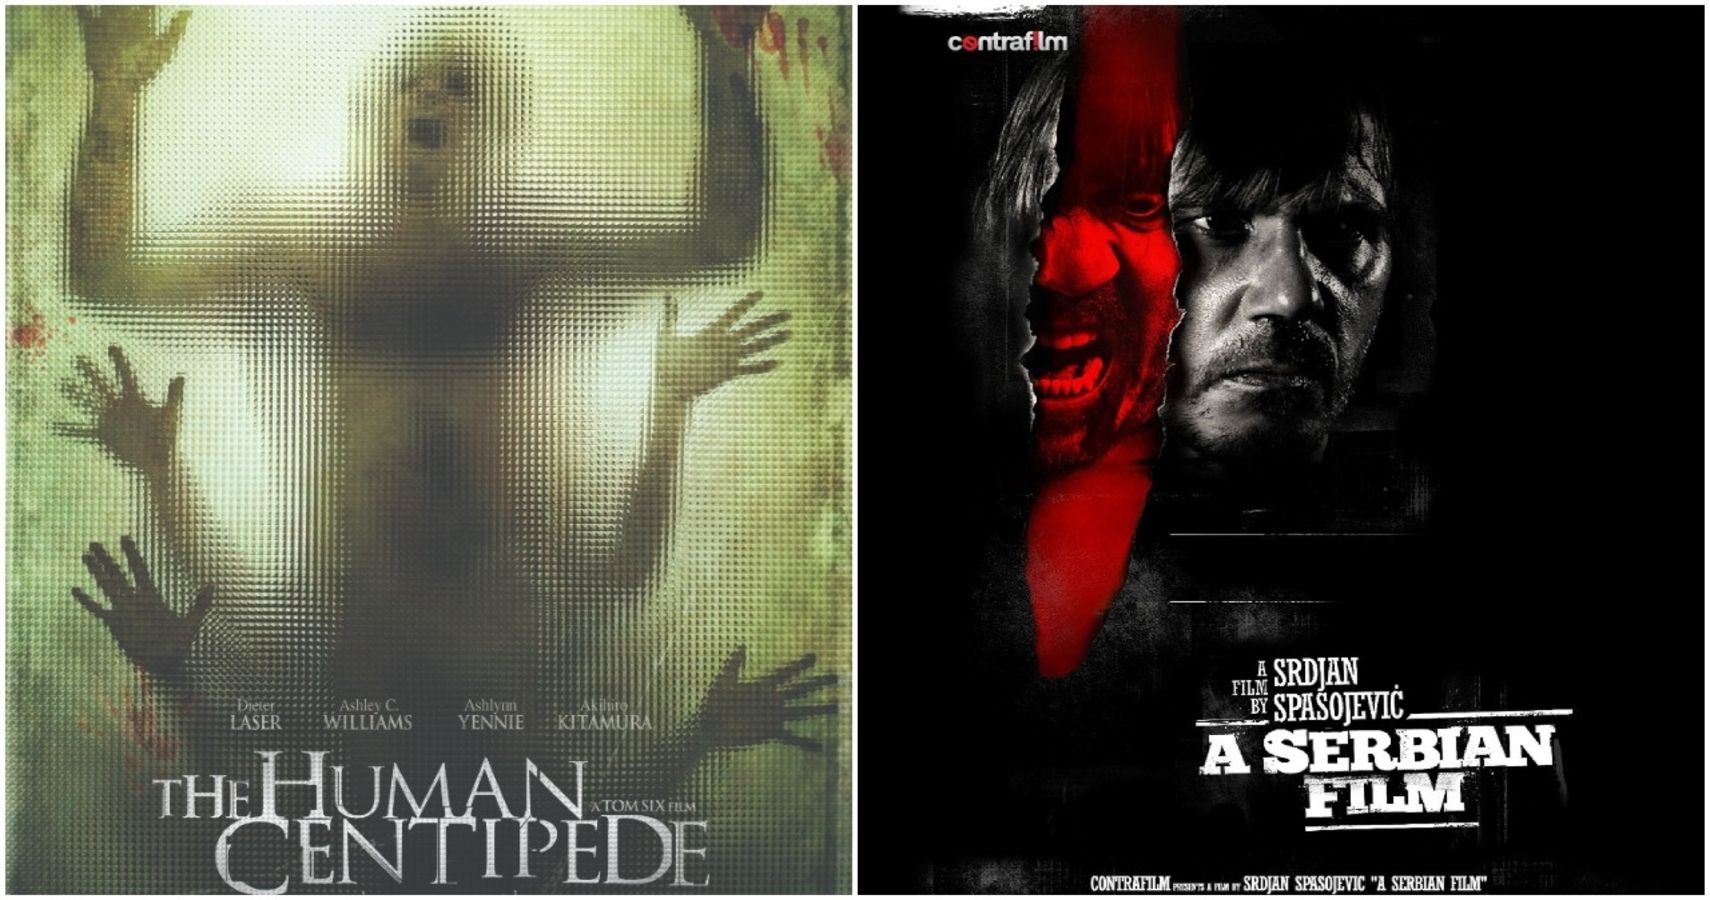 A Serbian Film Porno 5 movies that were banned for more than 10 years (& 5 that